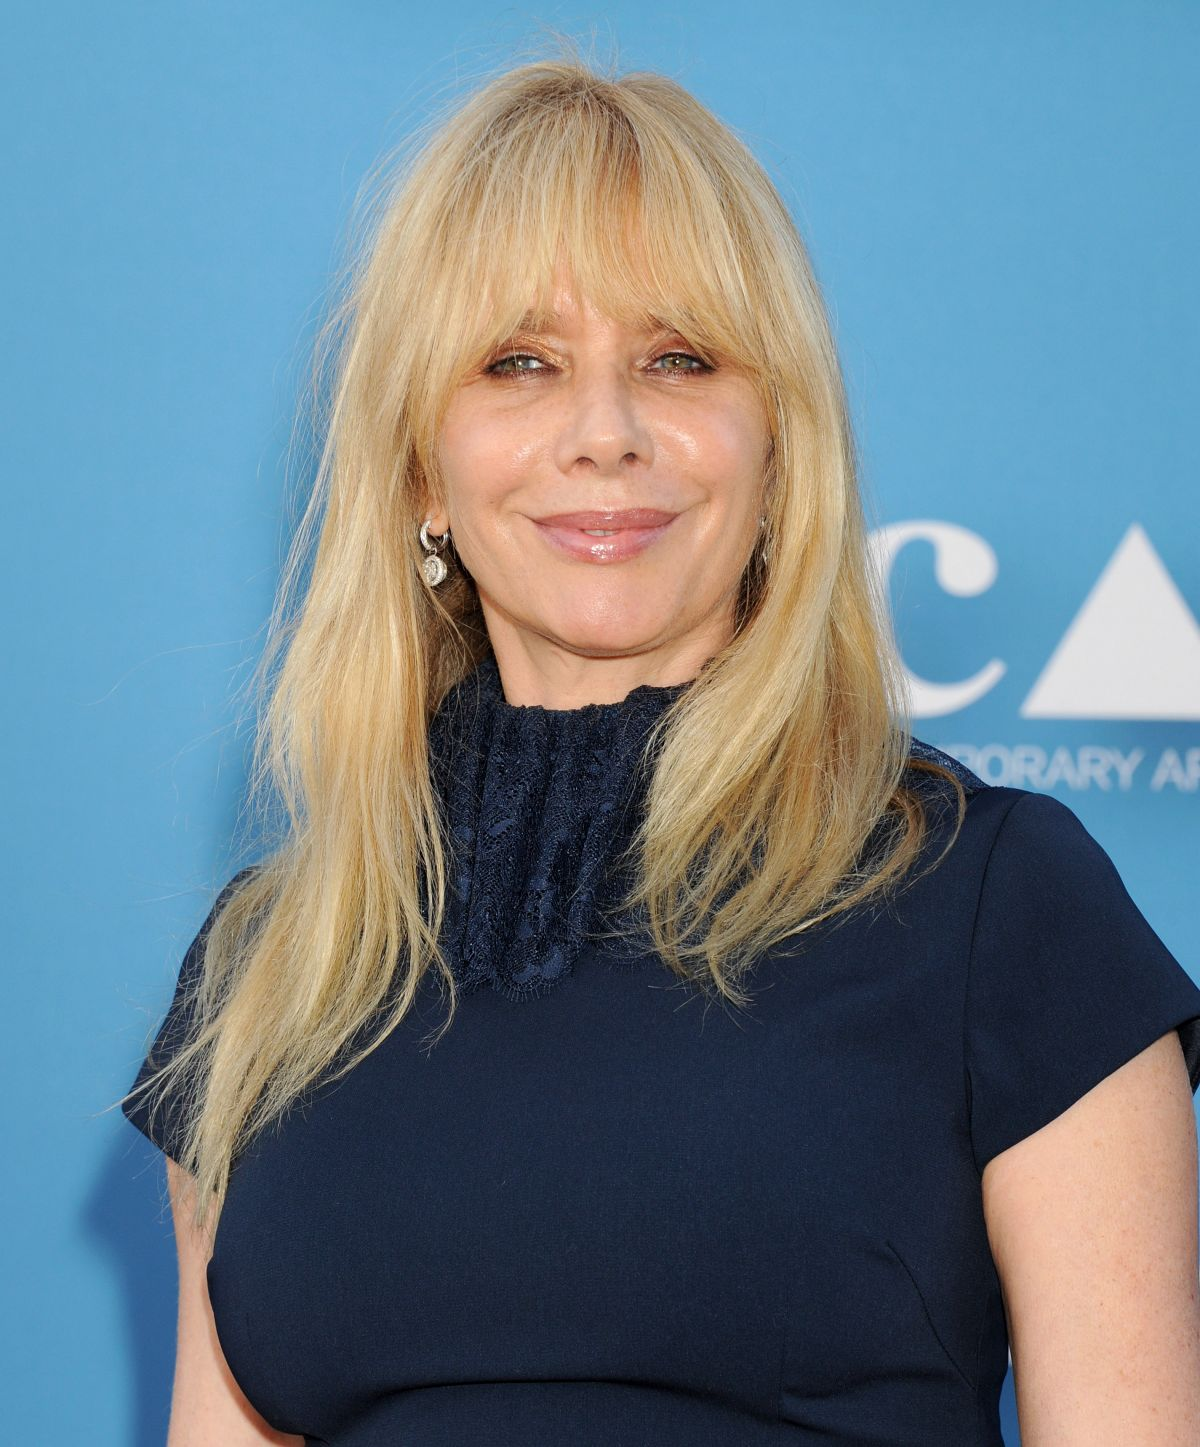 ROSANNA ARQUETTE at Moca Gala 2015 in Los Angeles